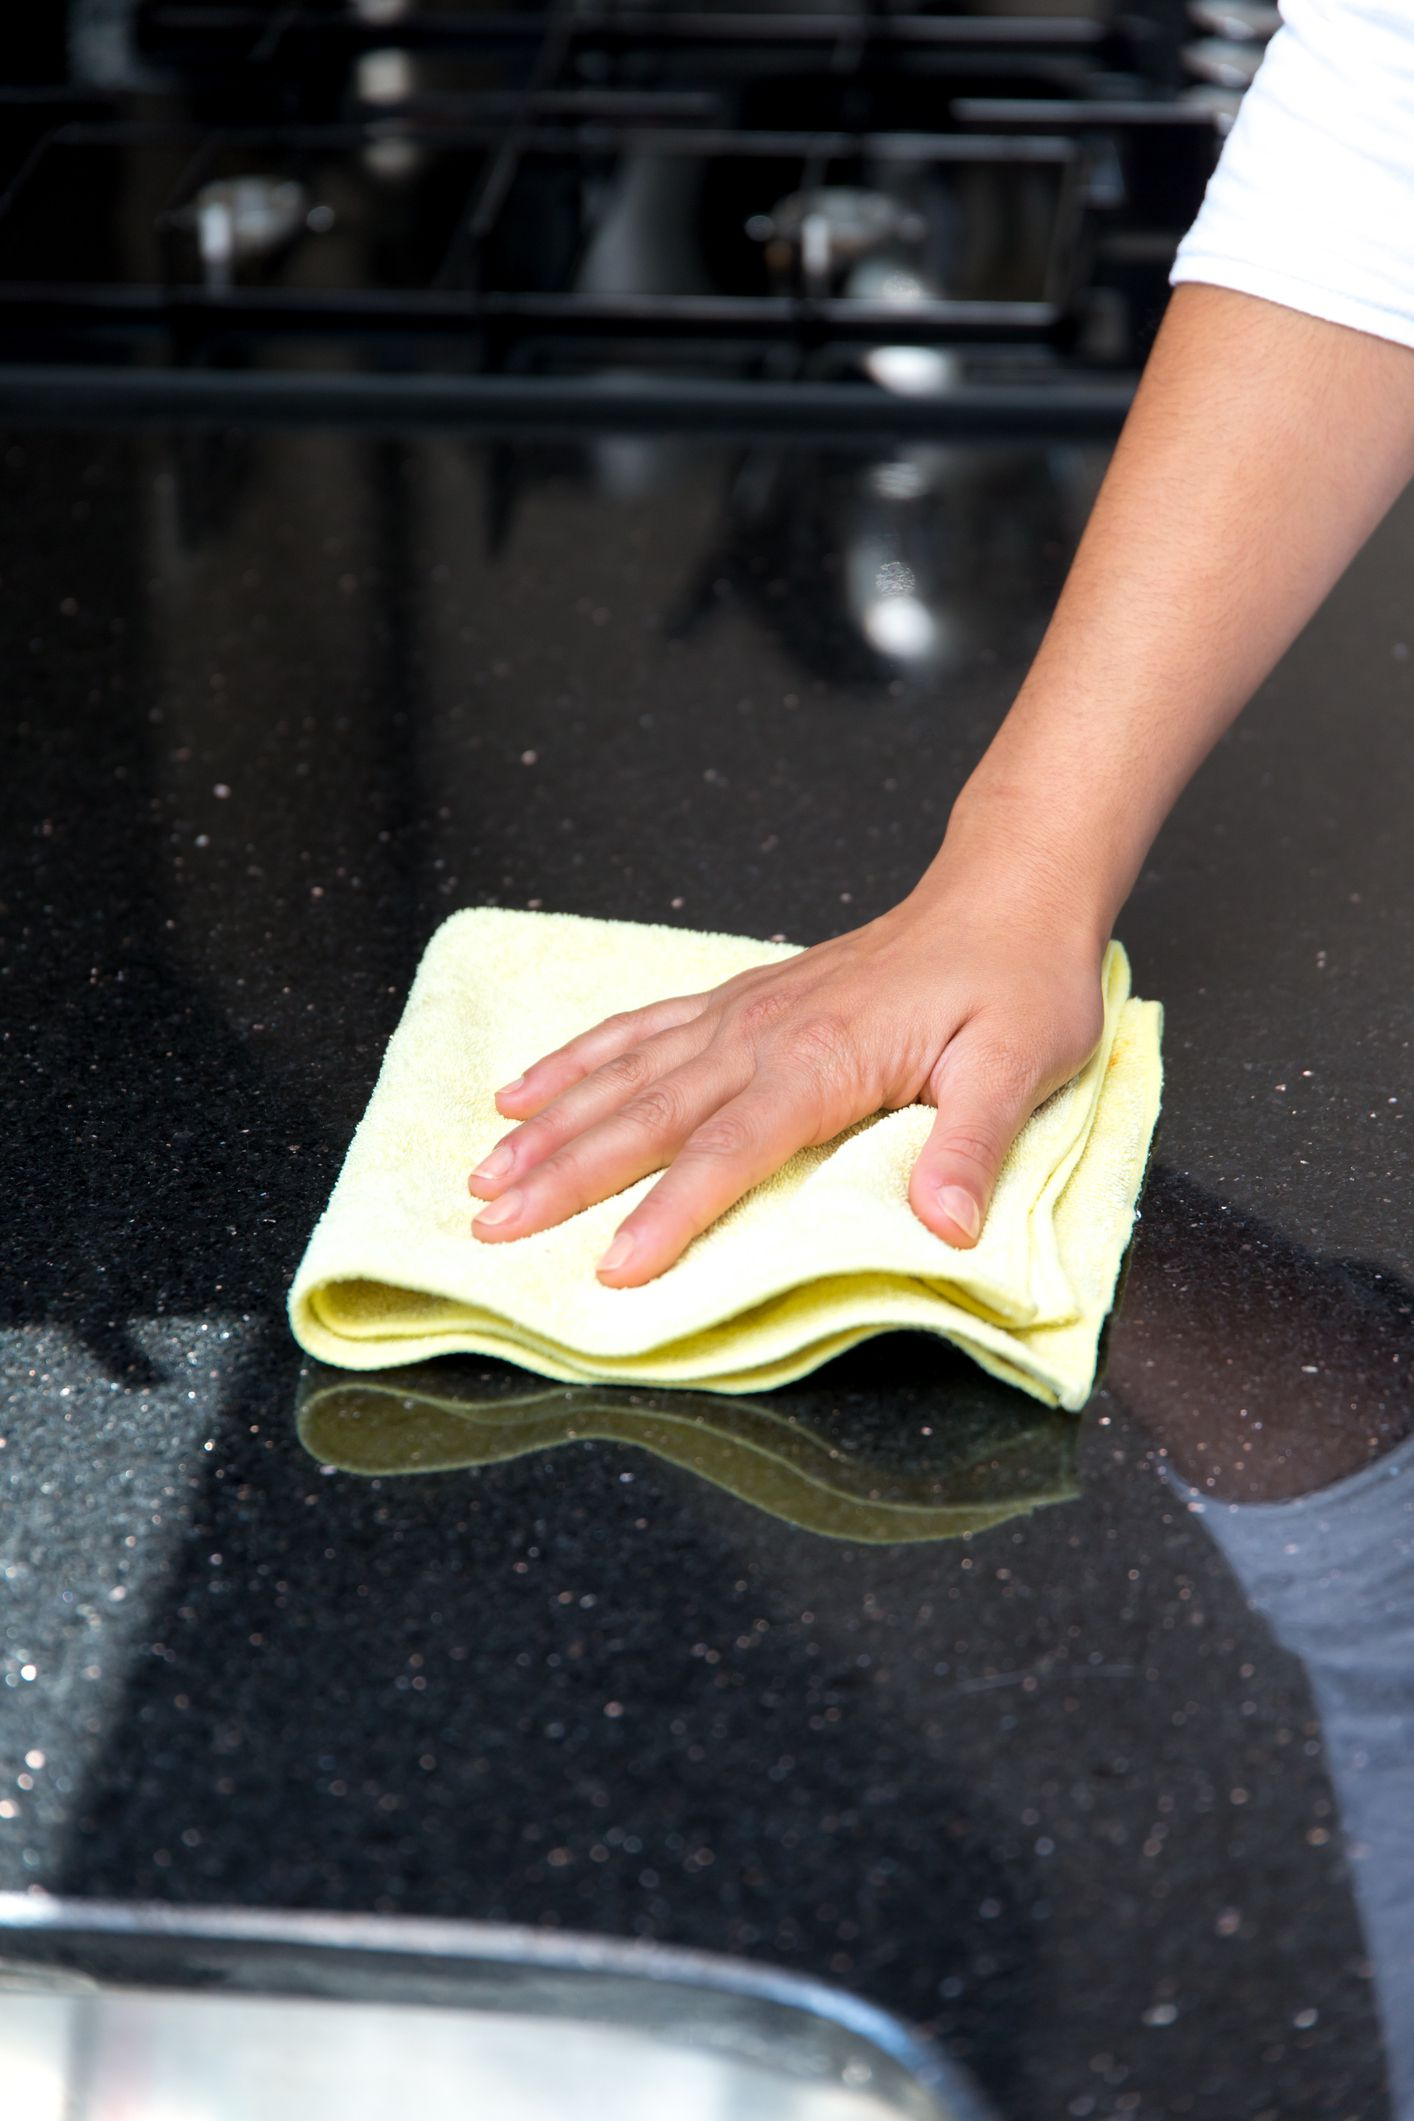 Giving your countertops a quick wipe down